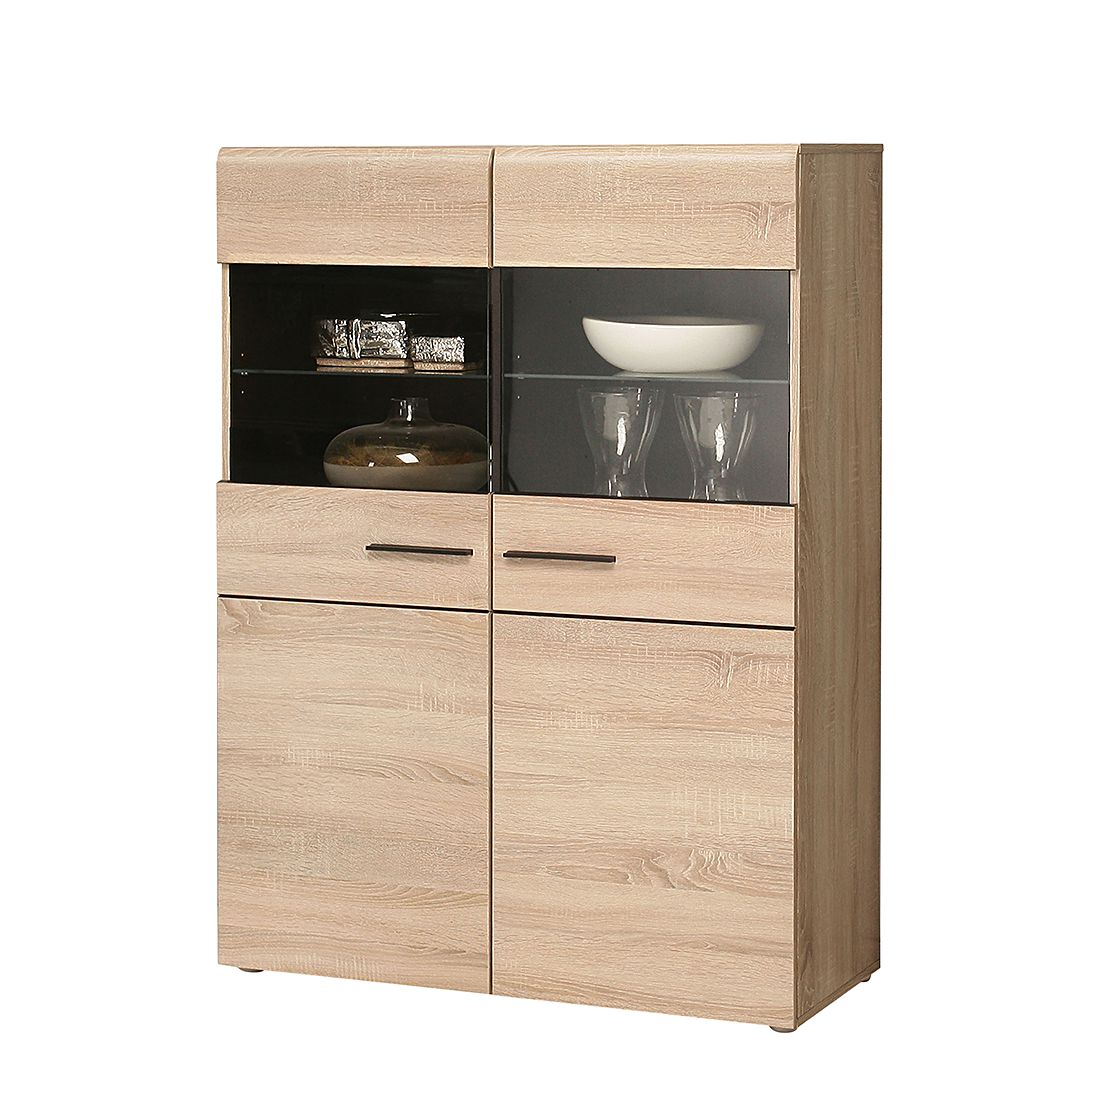 highboard nashville ii eiche dekor ohne beleuchtung california bestellen. Black Bedroom Furniture Sets. Home Design Ideas